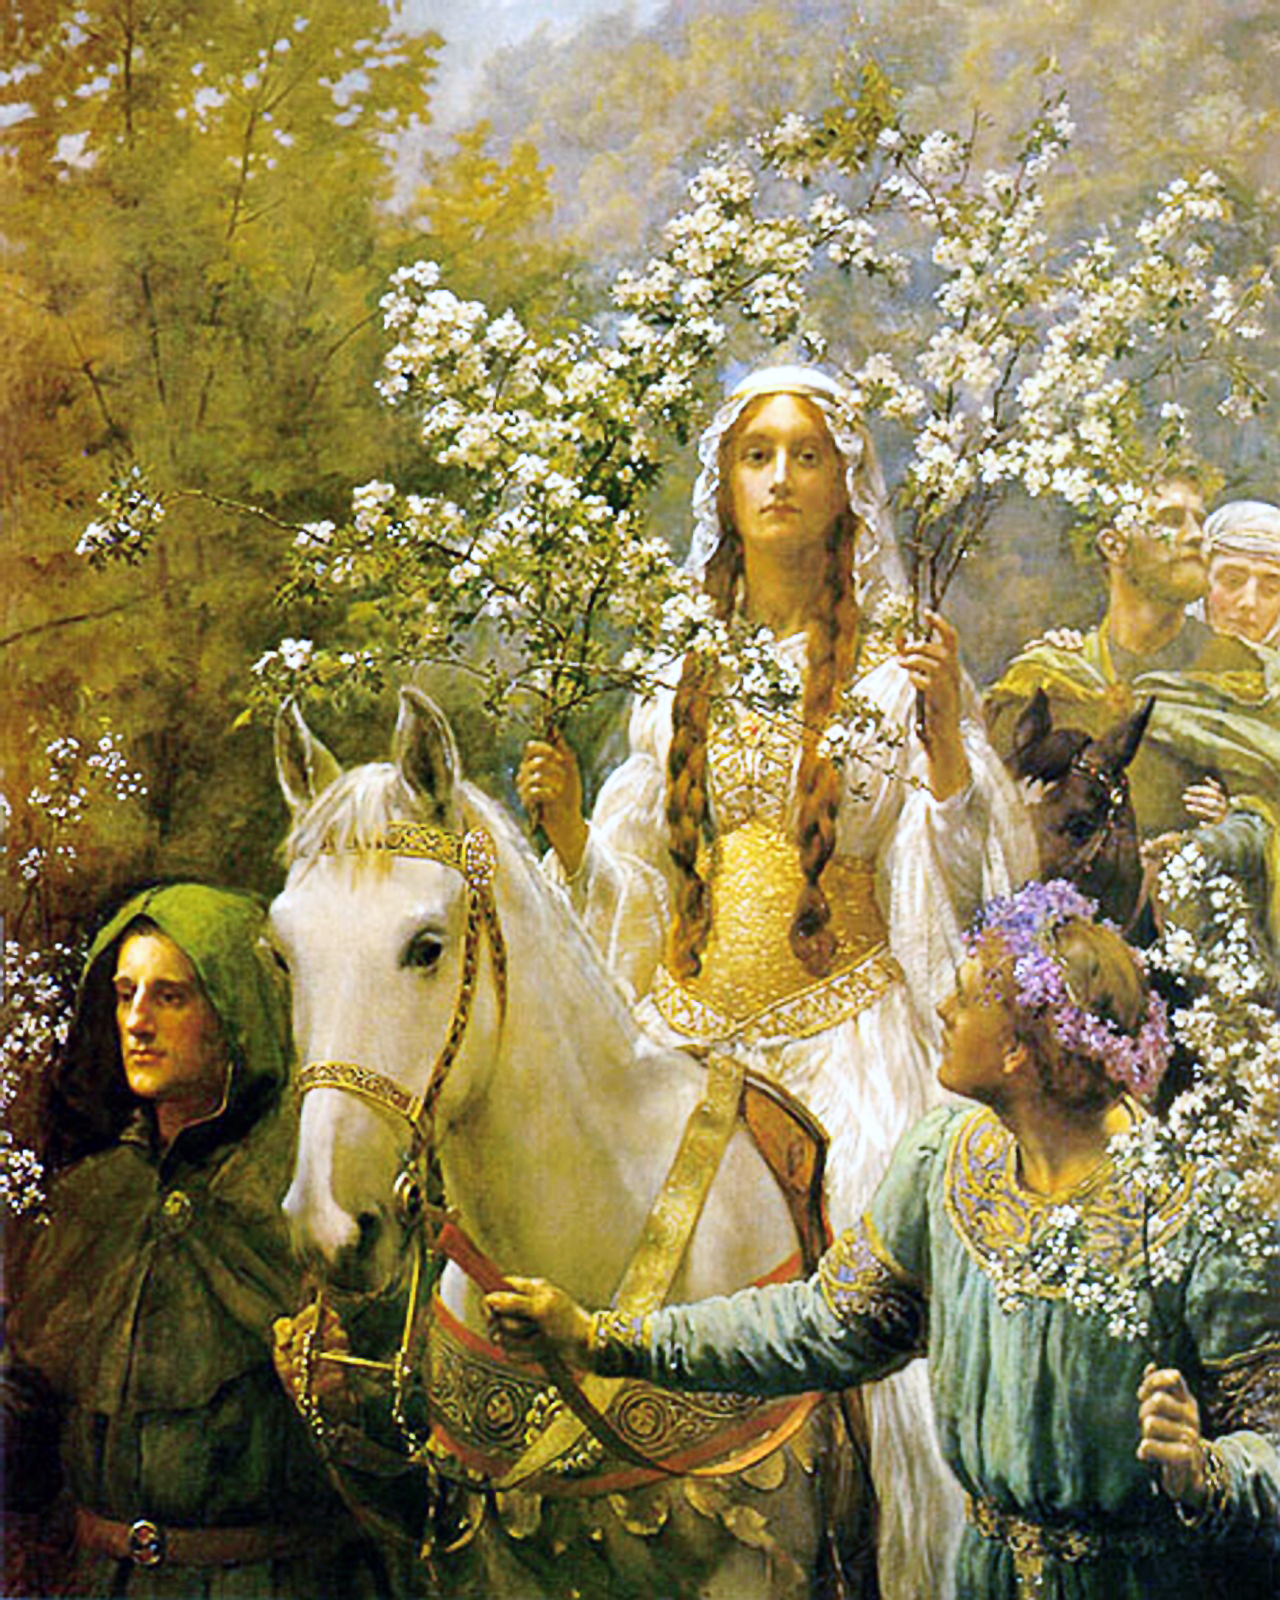 An image of Queen Guinevere as the May Queen.